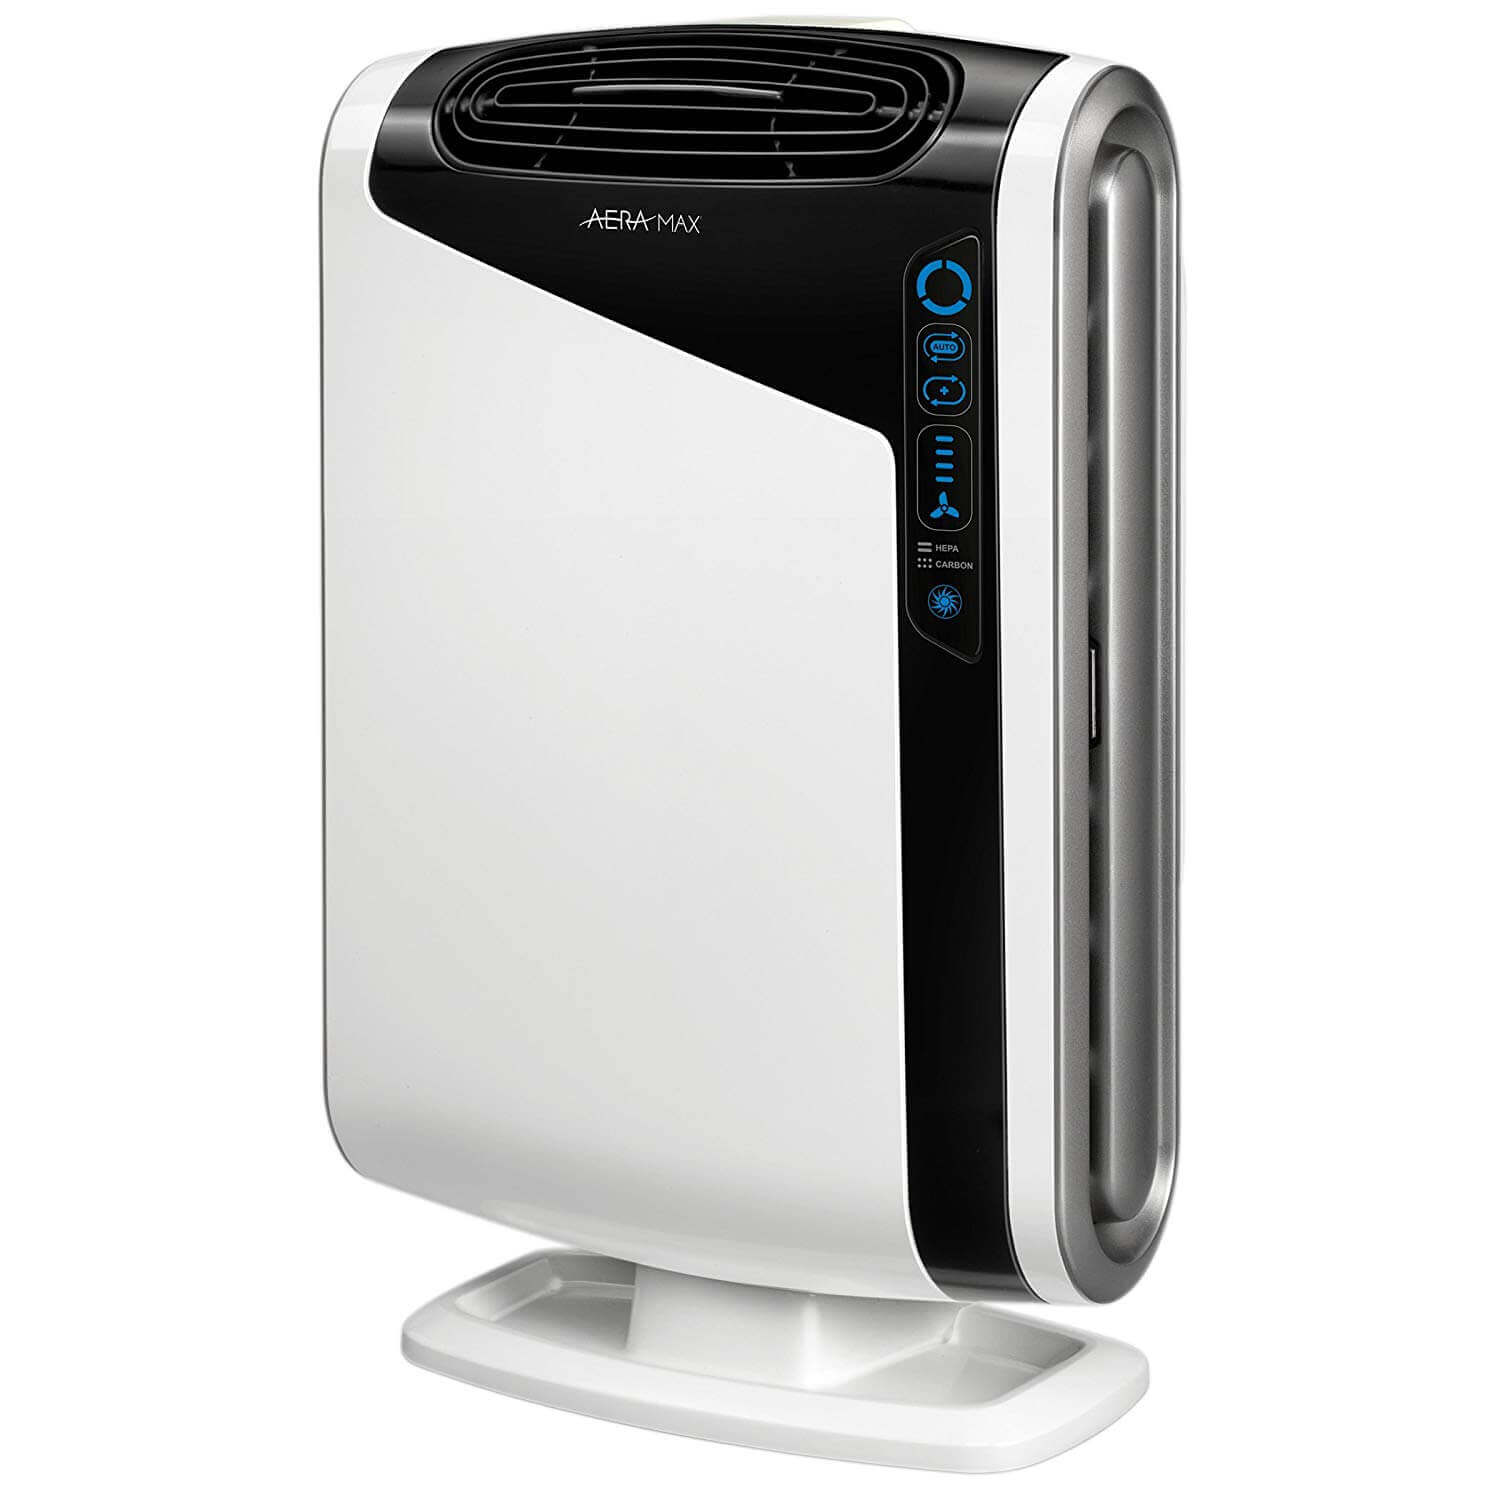 AeraMax 300 asthma air purifier